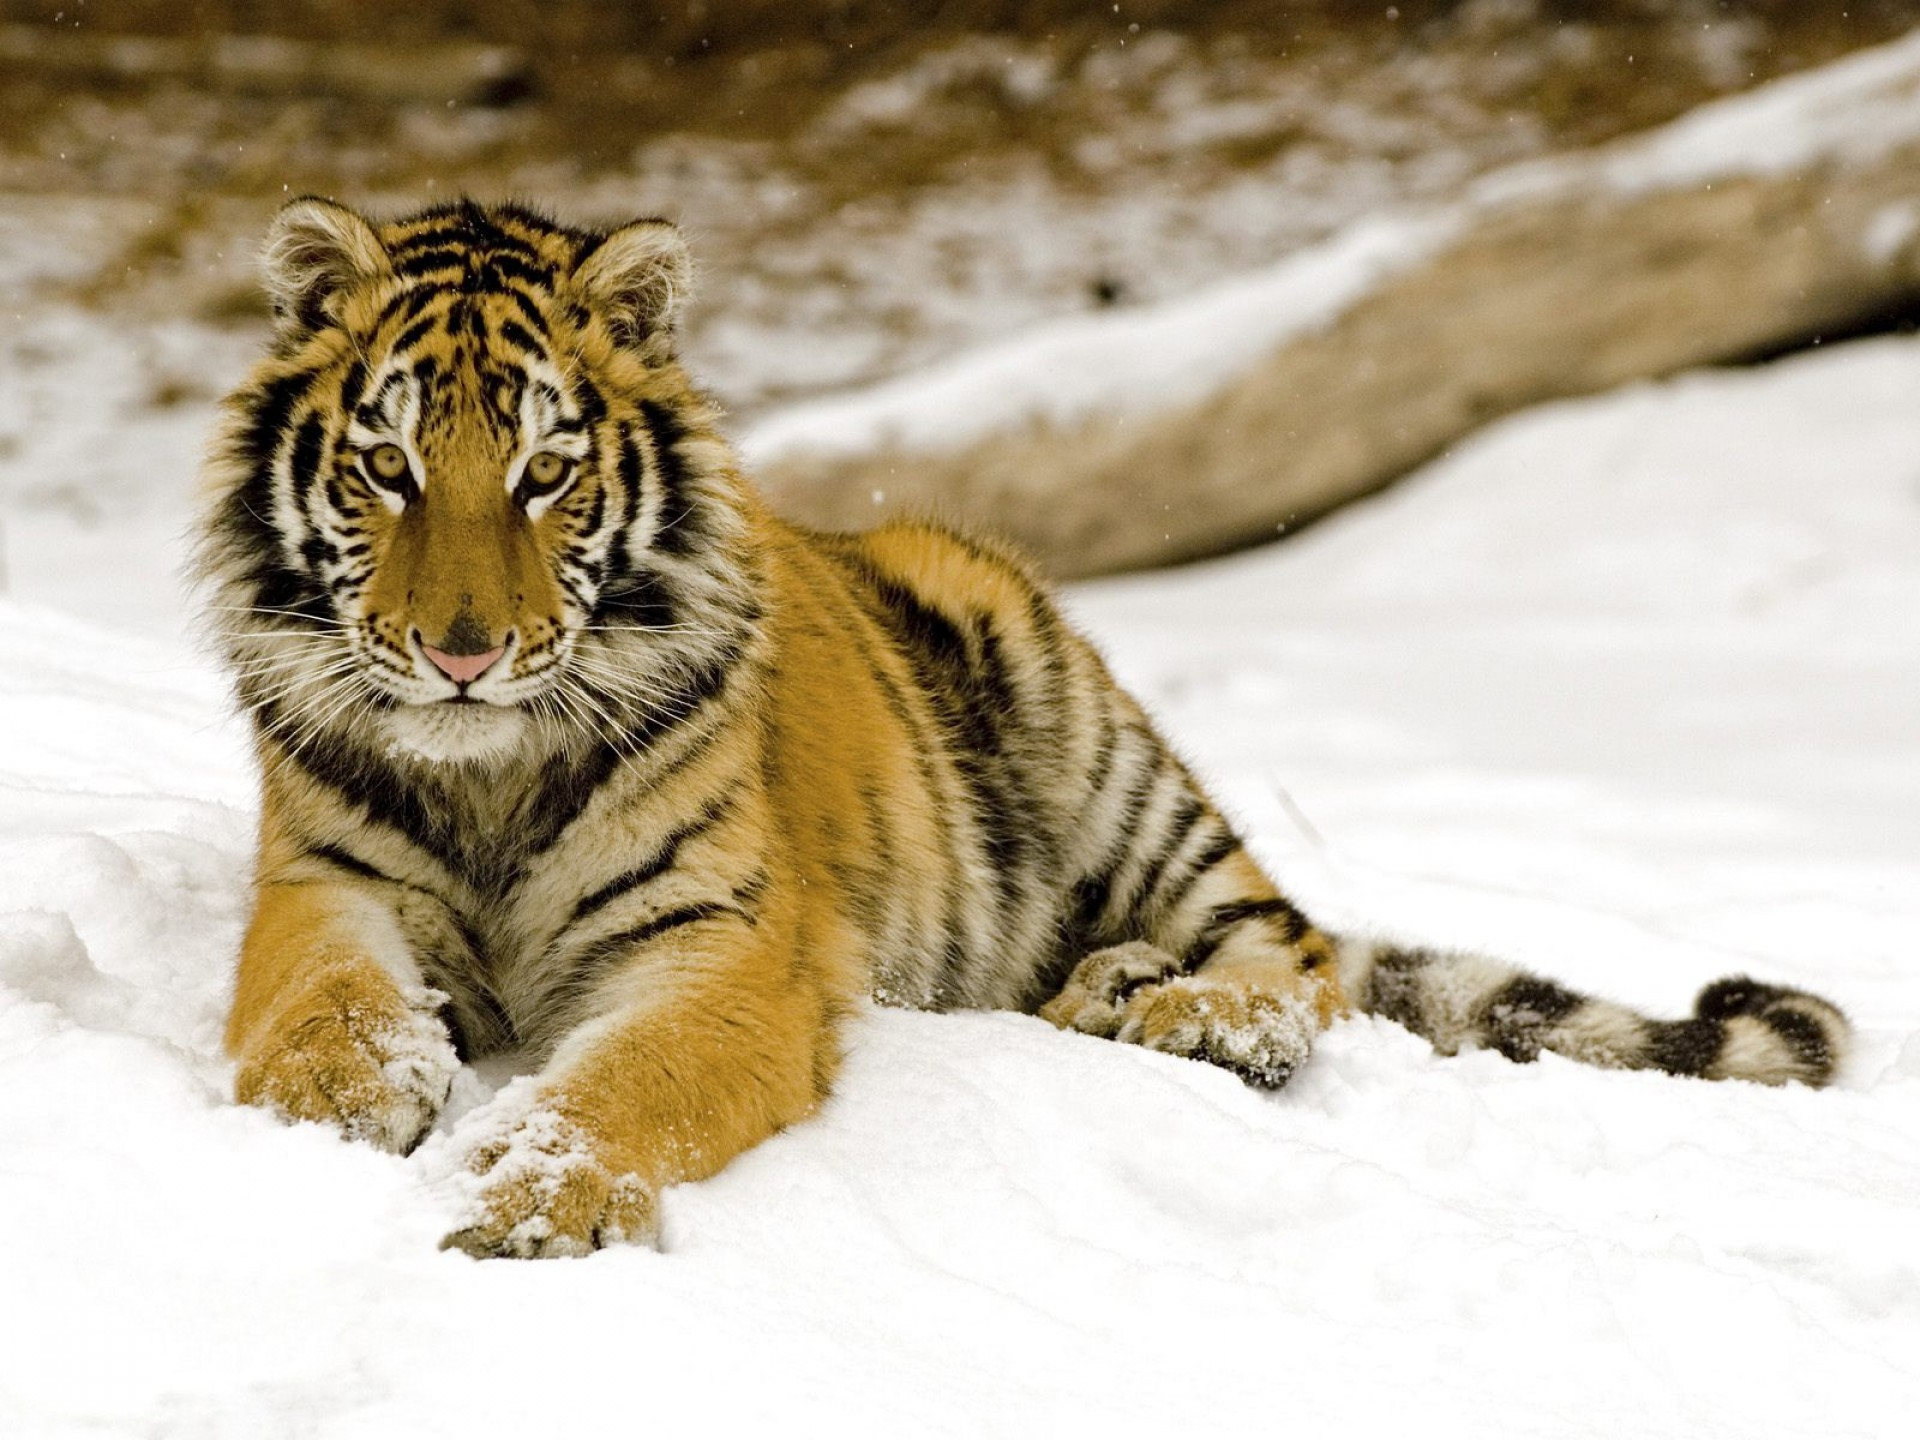 154973 download wallpaper Animals, Tiger, Snow, Young, Joey, Predator screensavers and pictures for free